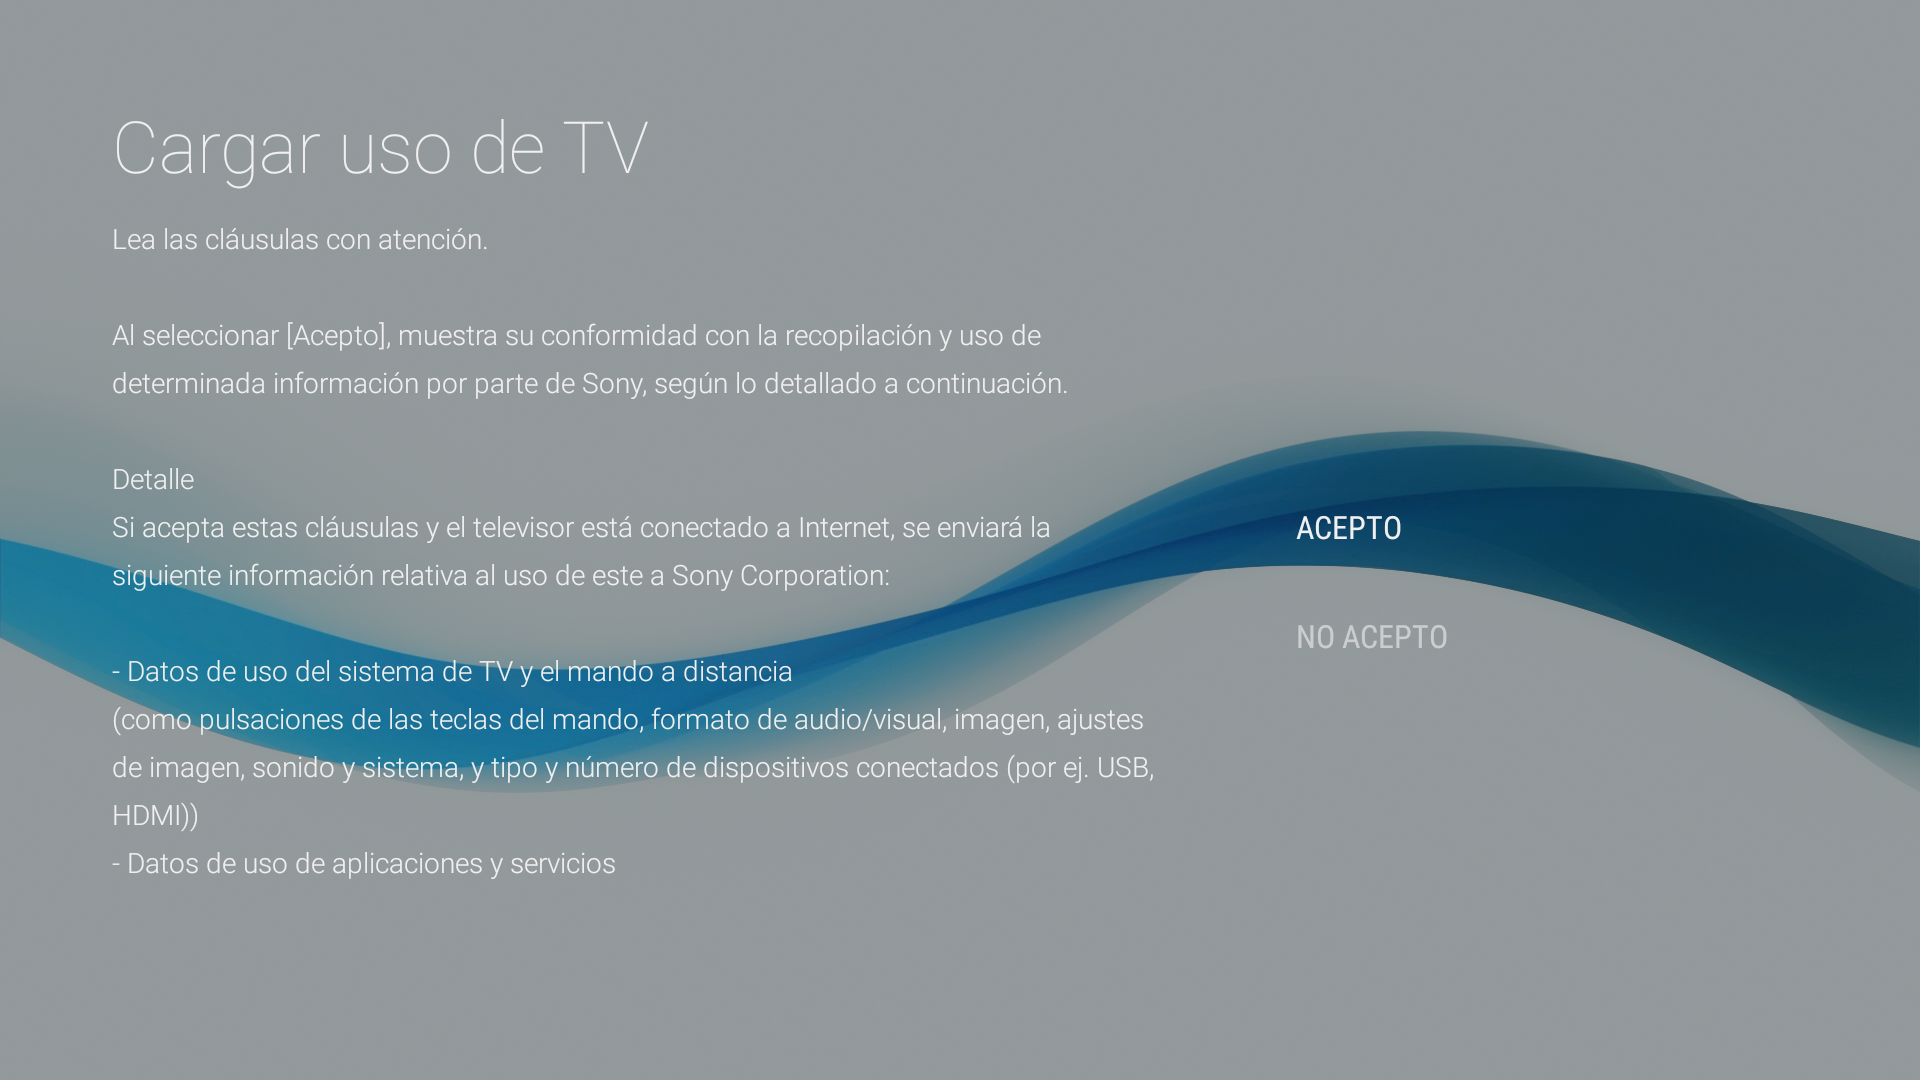 Android - Cargar uso TV